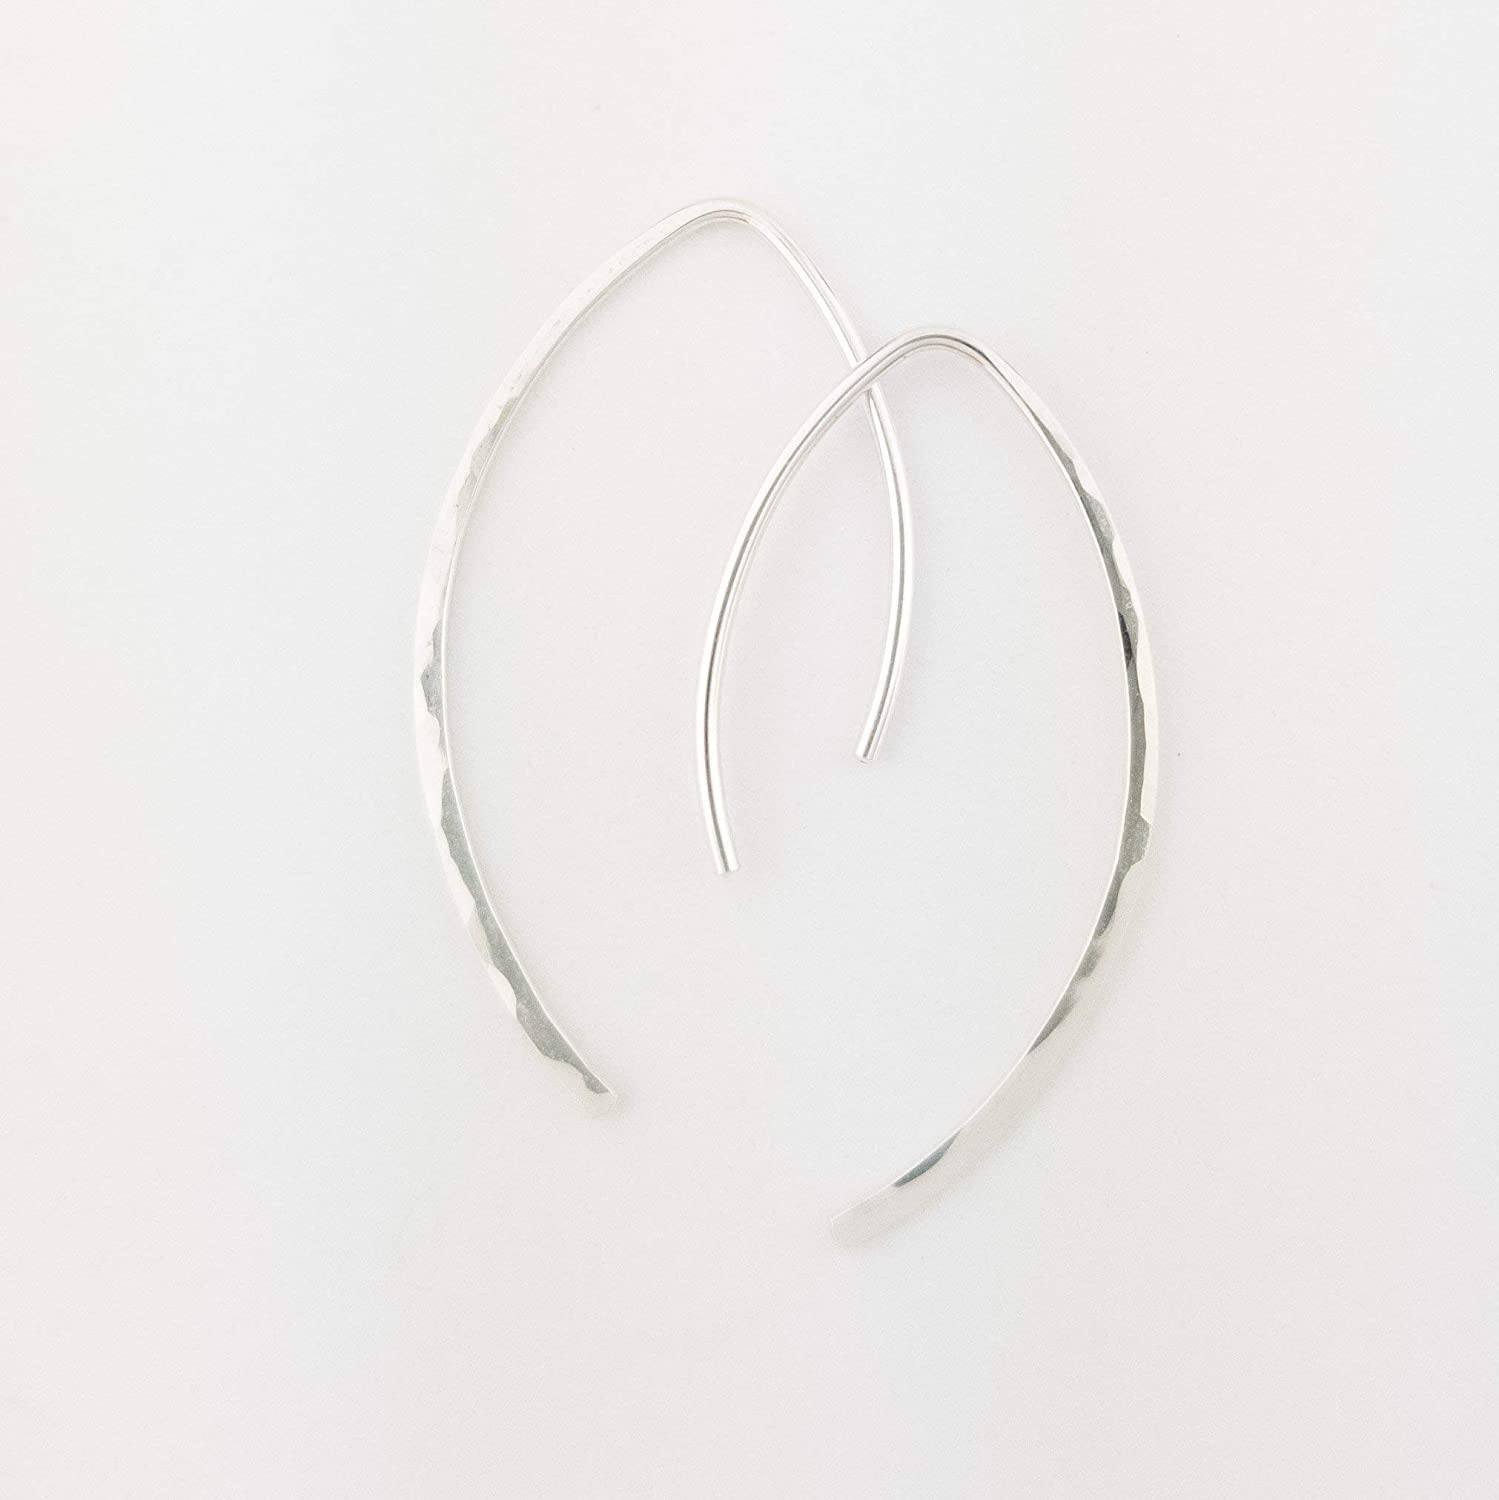 "1"" Thin Sterling Silver Hammered Threader Earrings Open Hoop 20 Gauge (.8mm) 71nDvV-iU2L"